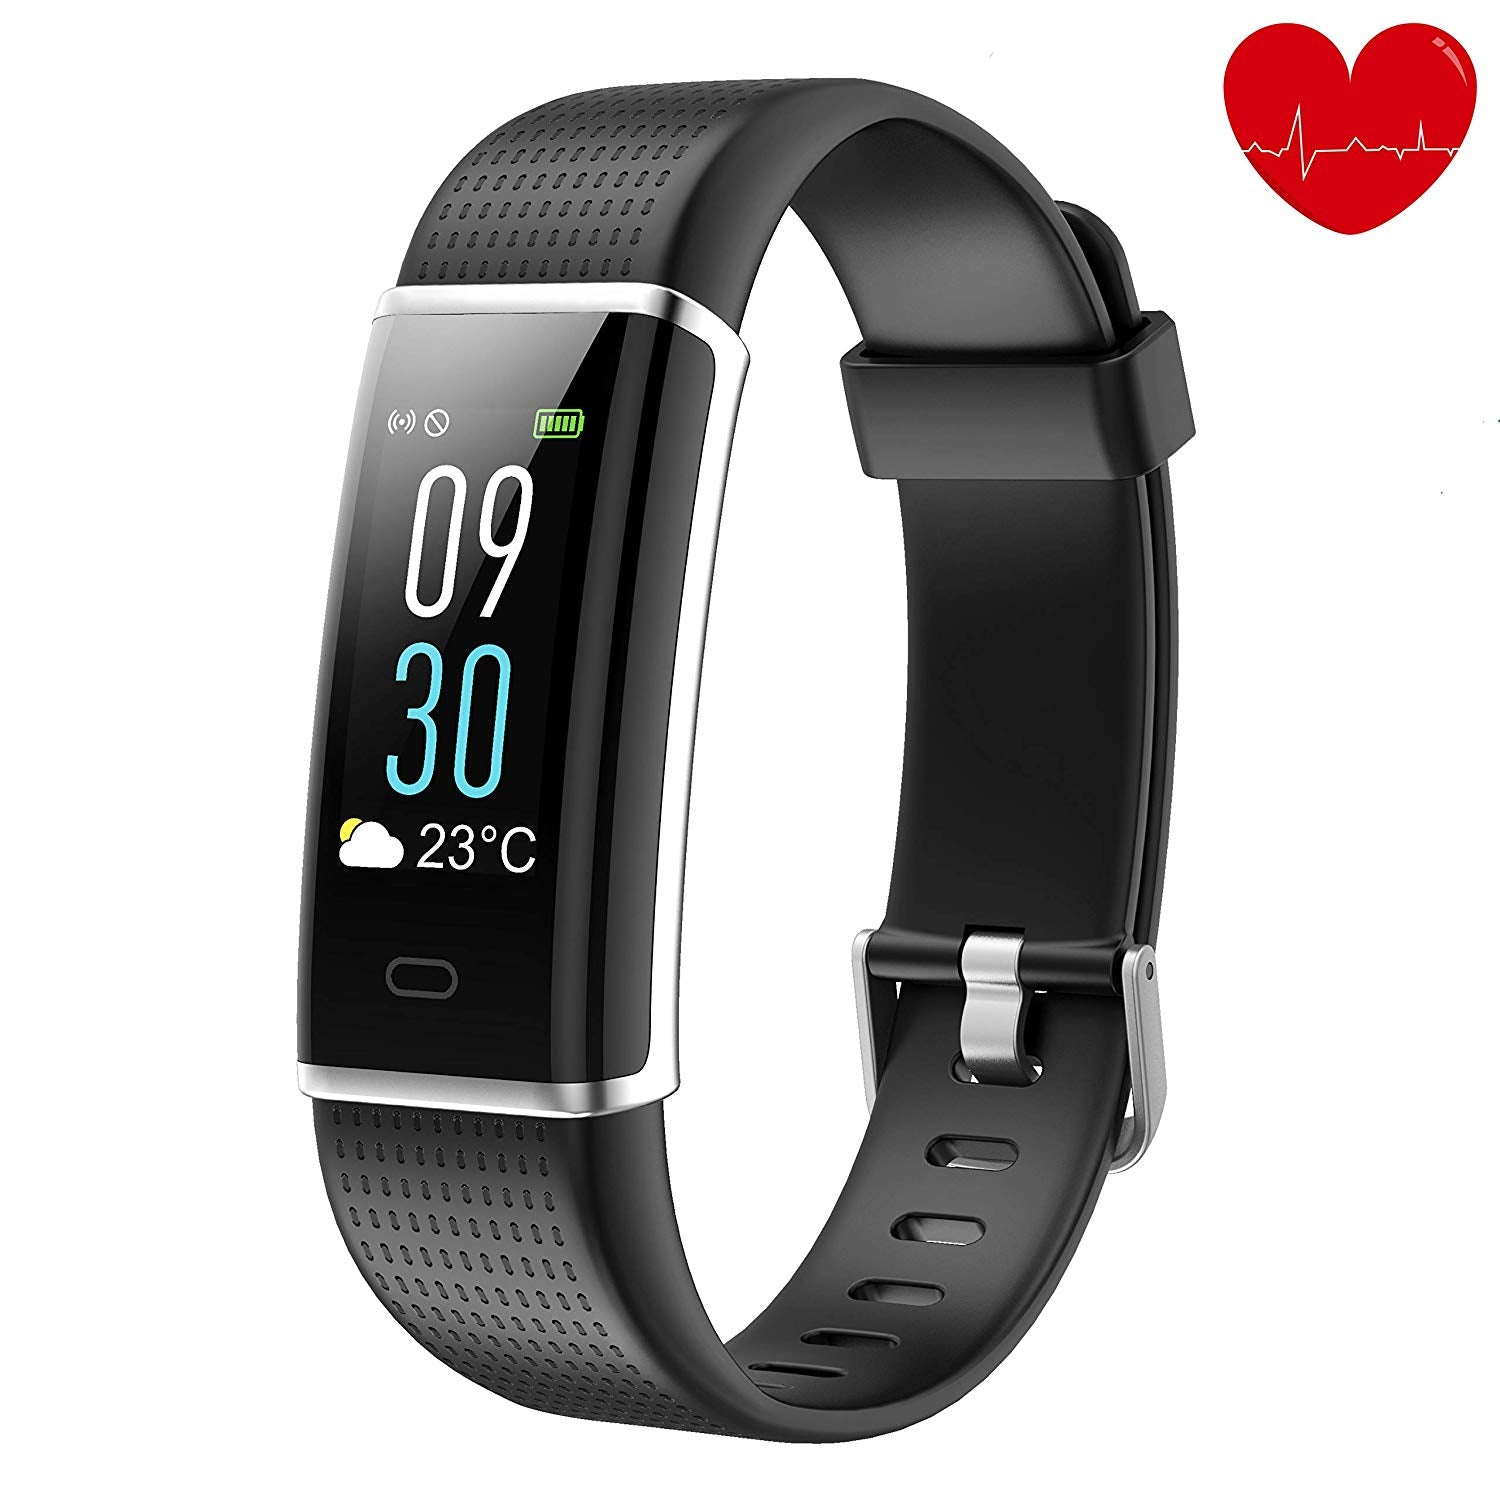 Ntech Veryfit ID130 Fitness Tracker with Heartrate Monitor | Monthly Madness